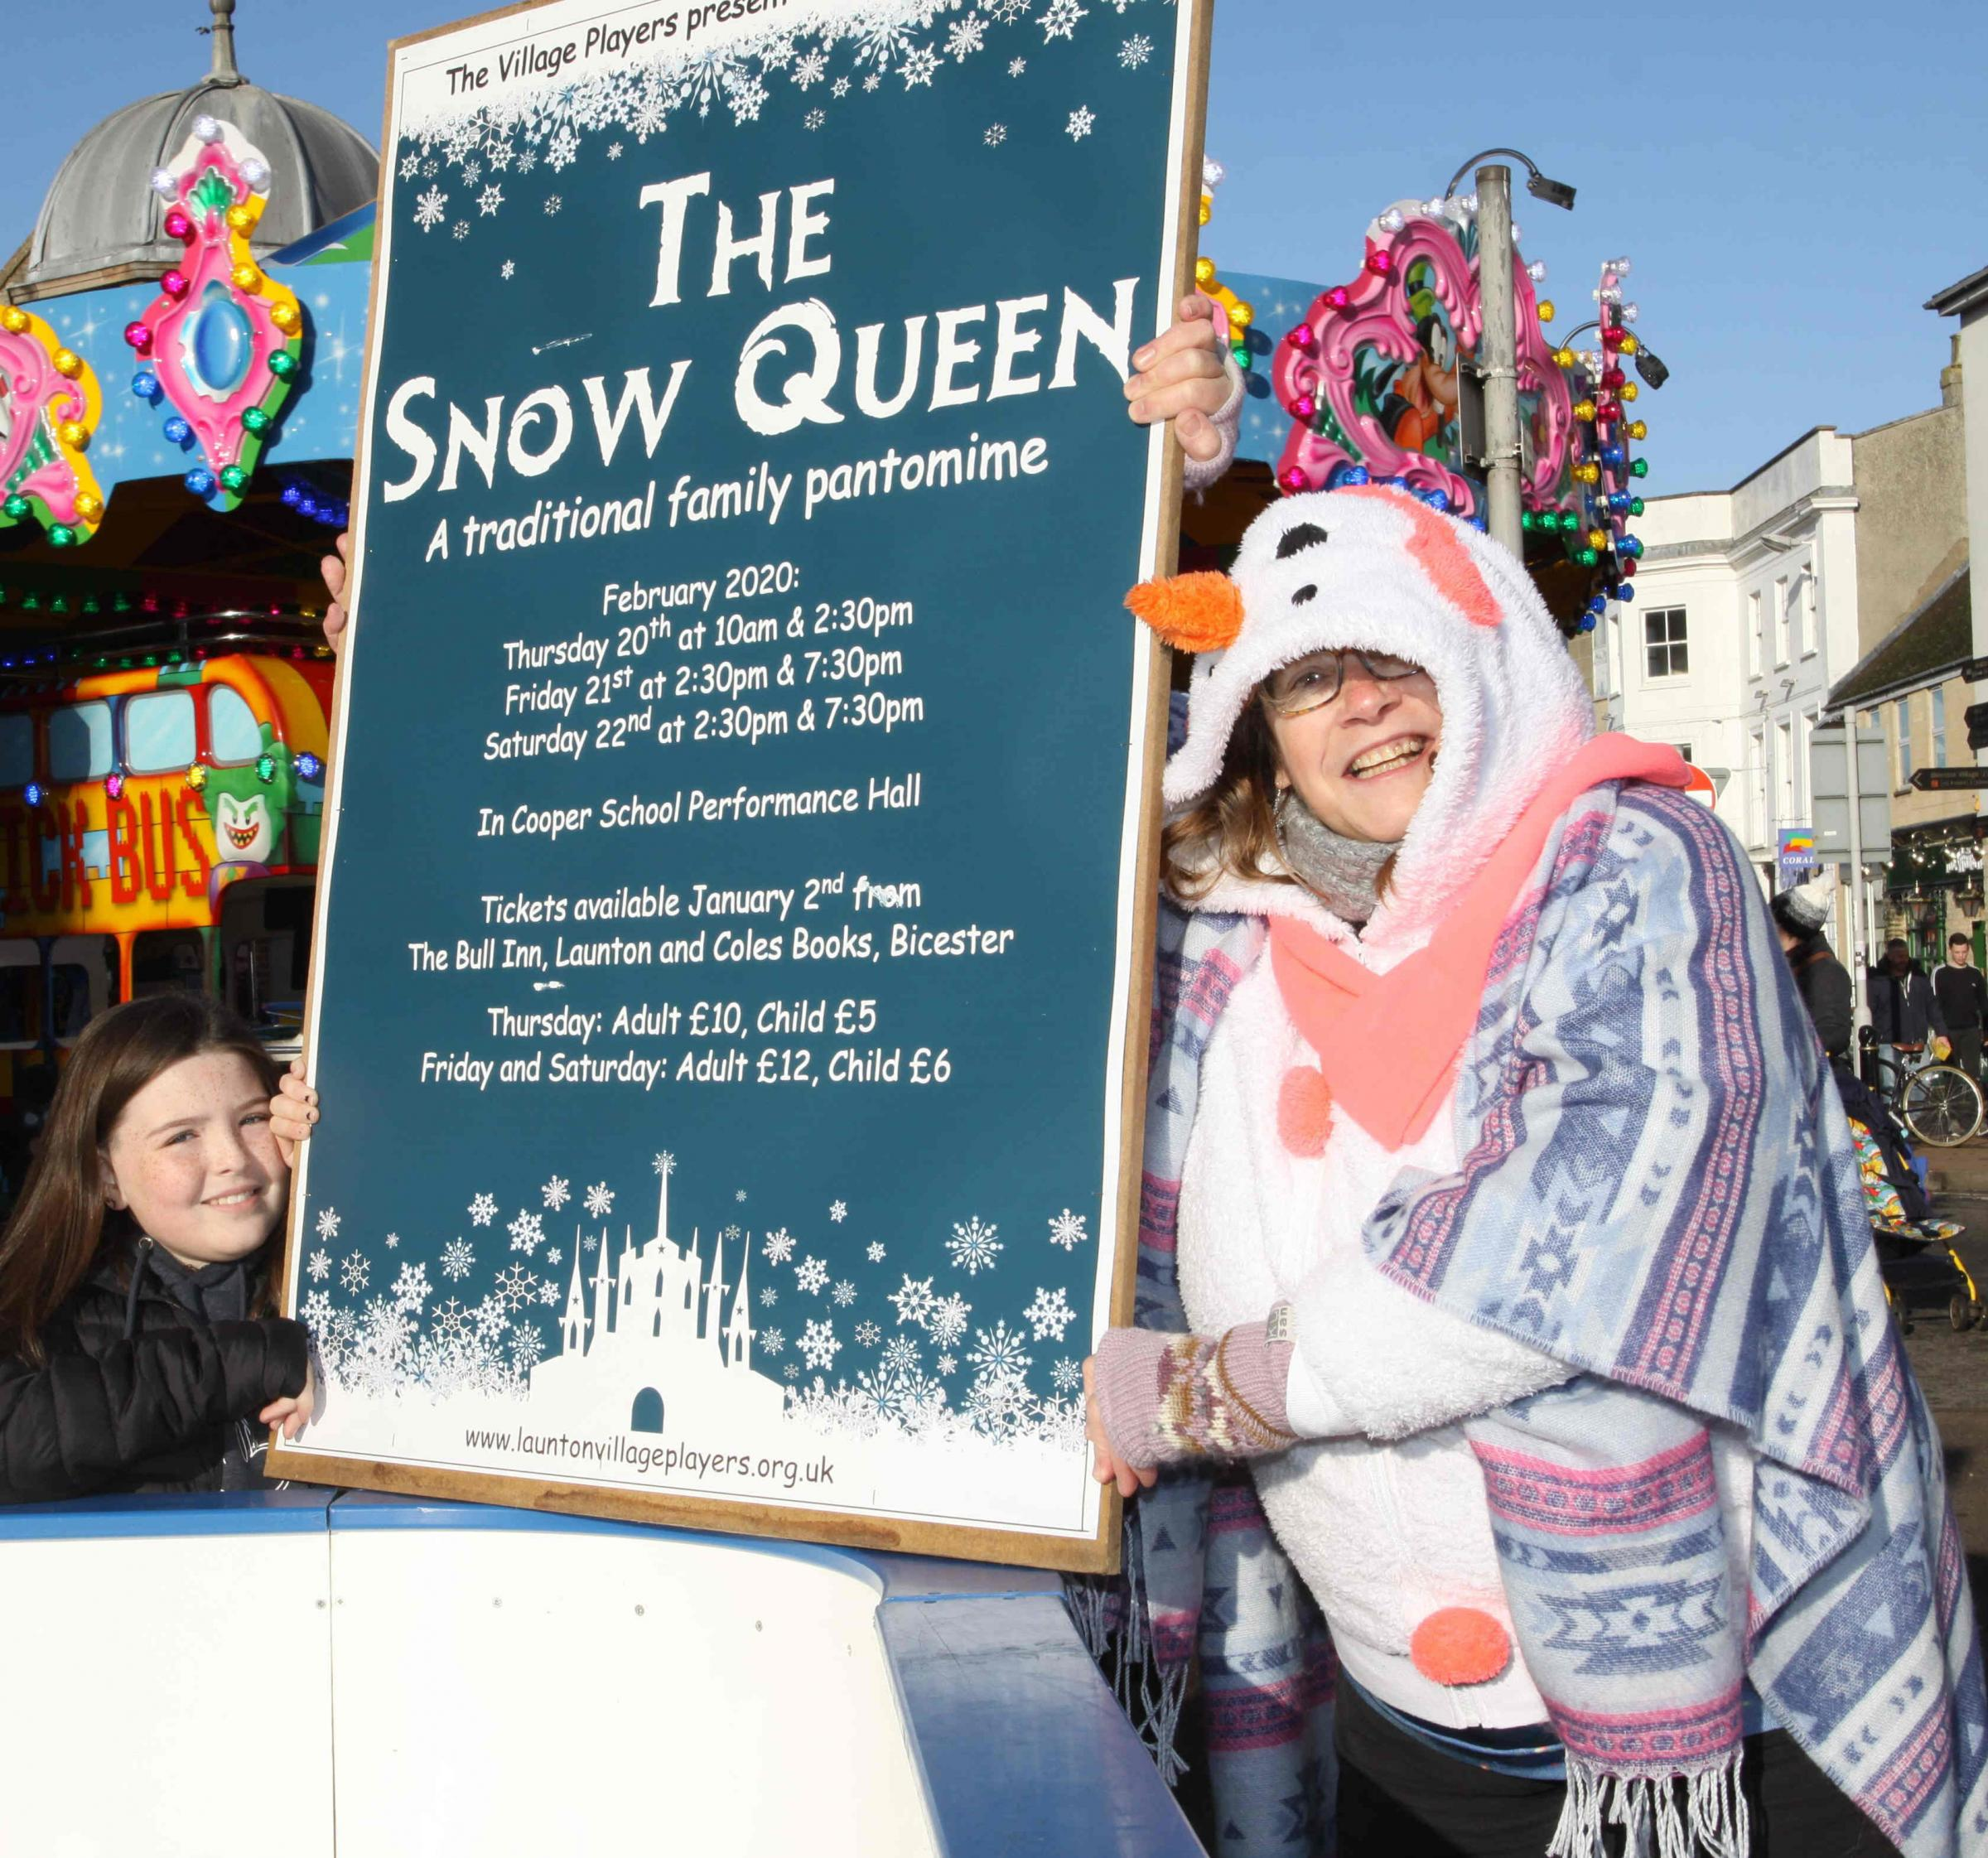 Preparations underway for The Snow Queen pantomime by Launton Village Players